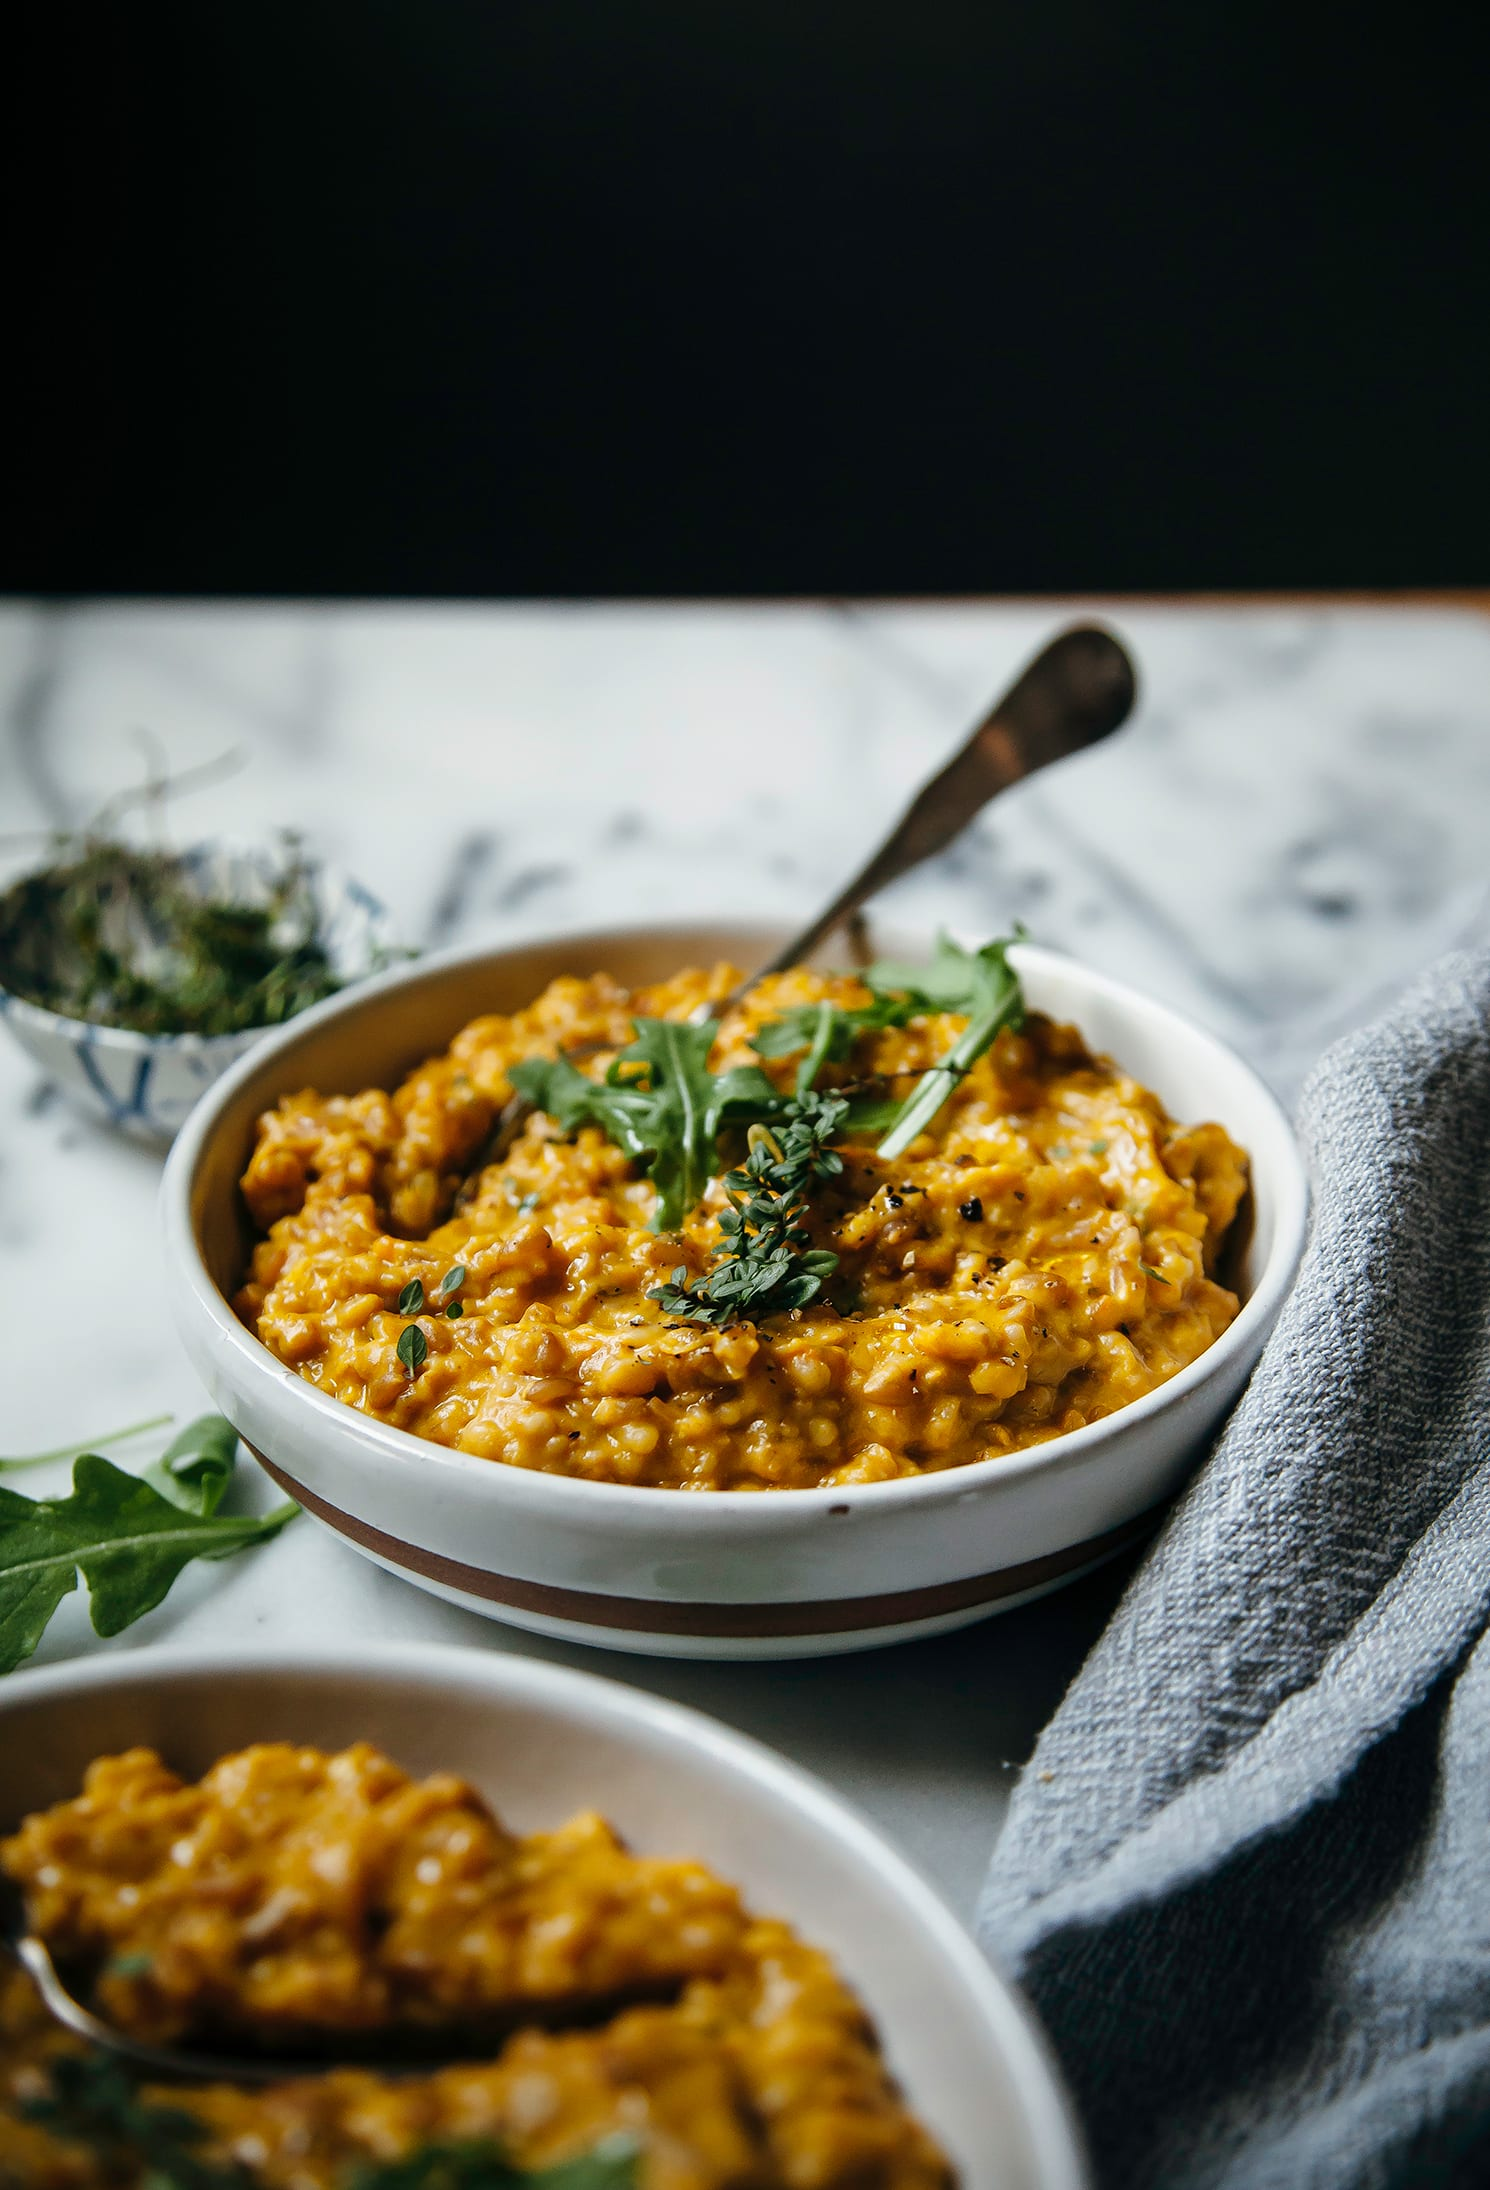 Creamy vegan farrotto with butternut squash the first mess creamy vegan farrotto with butternut squash the first mess plant based recipes photography by laura wright forumfinder Images